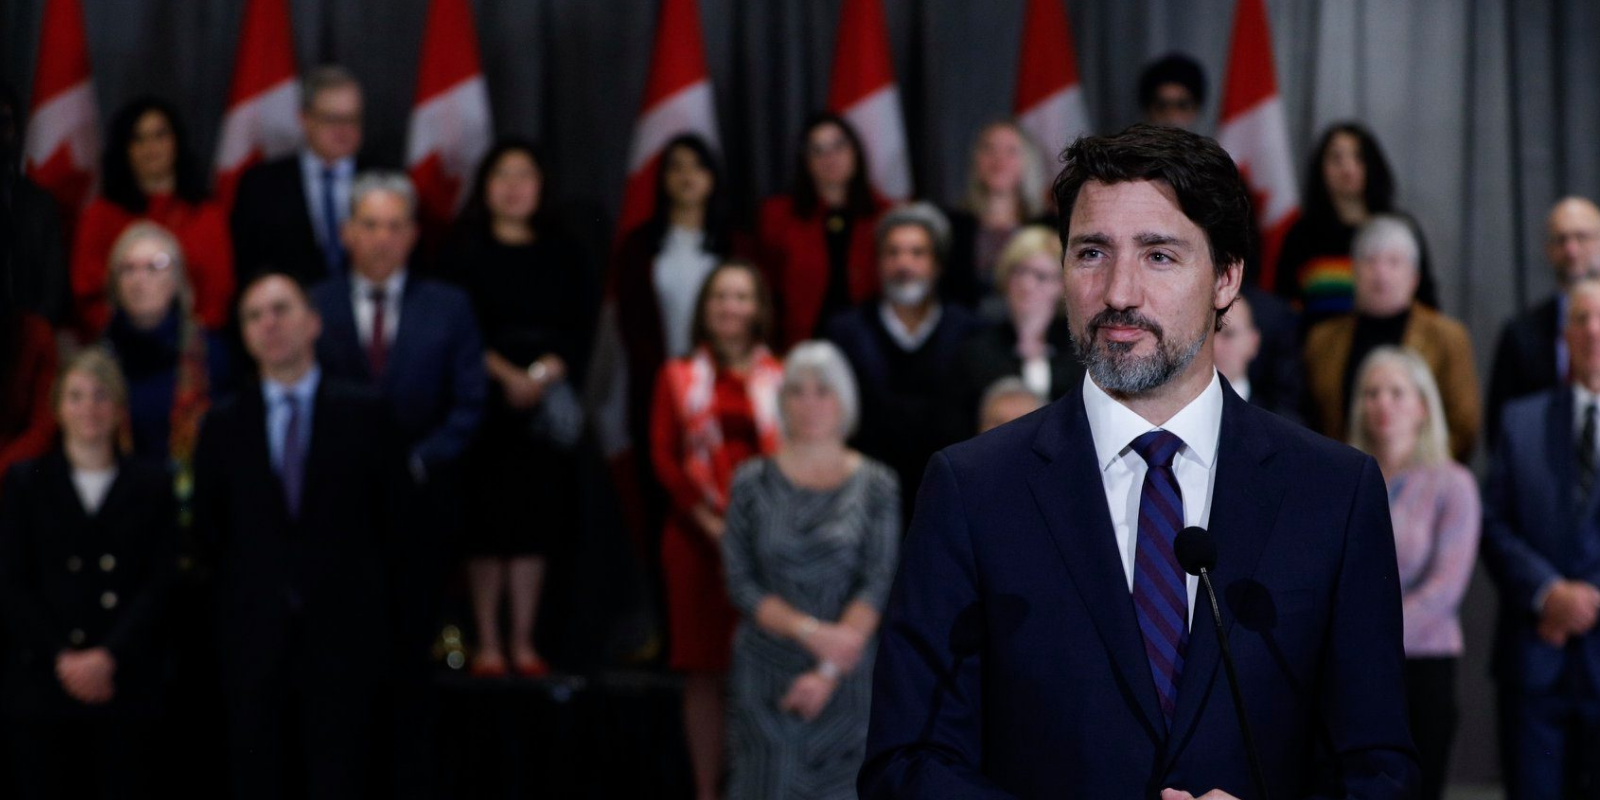 The political and corporate elites are engaged in vicious class warfare against small business owners and working Canadians